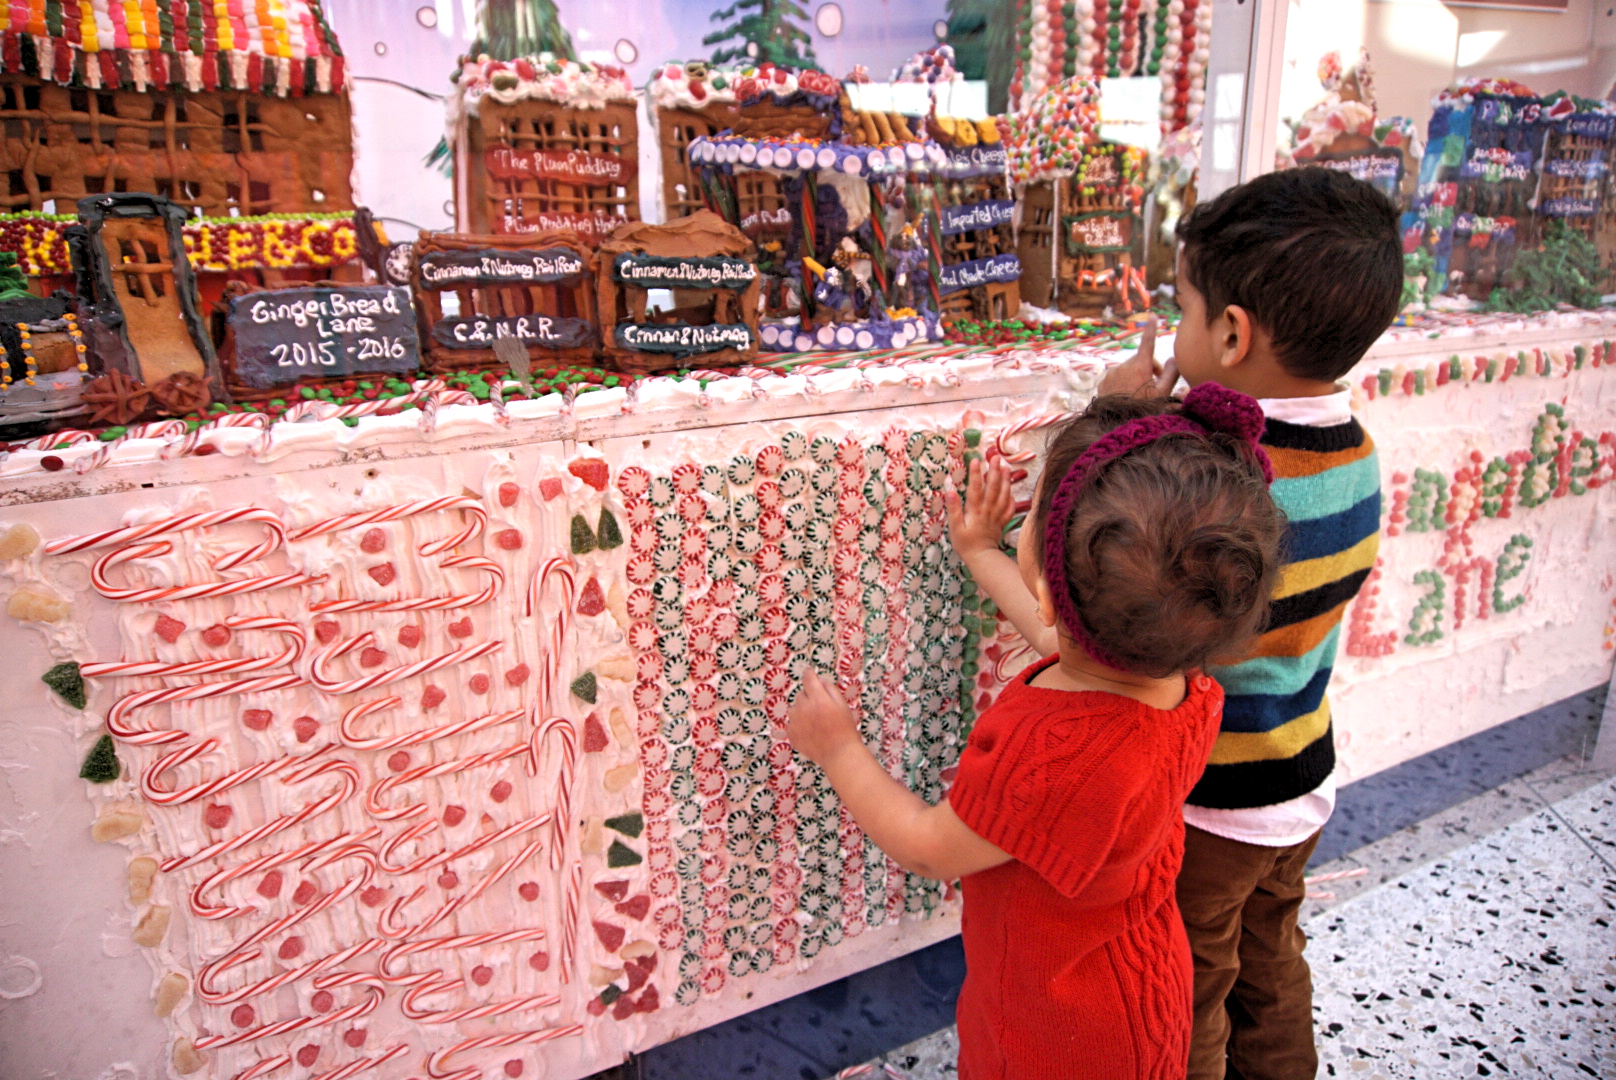 Gingerbread Lane, New York Hall of Science